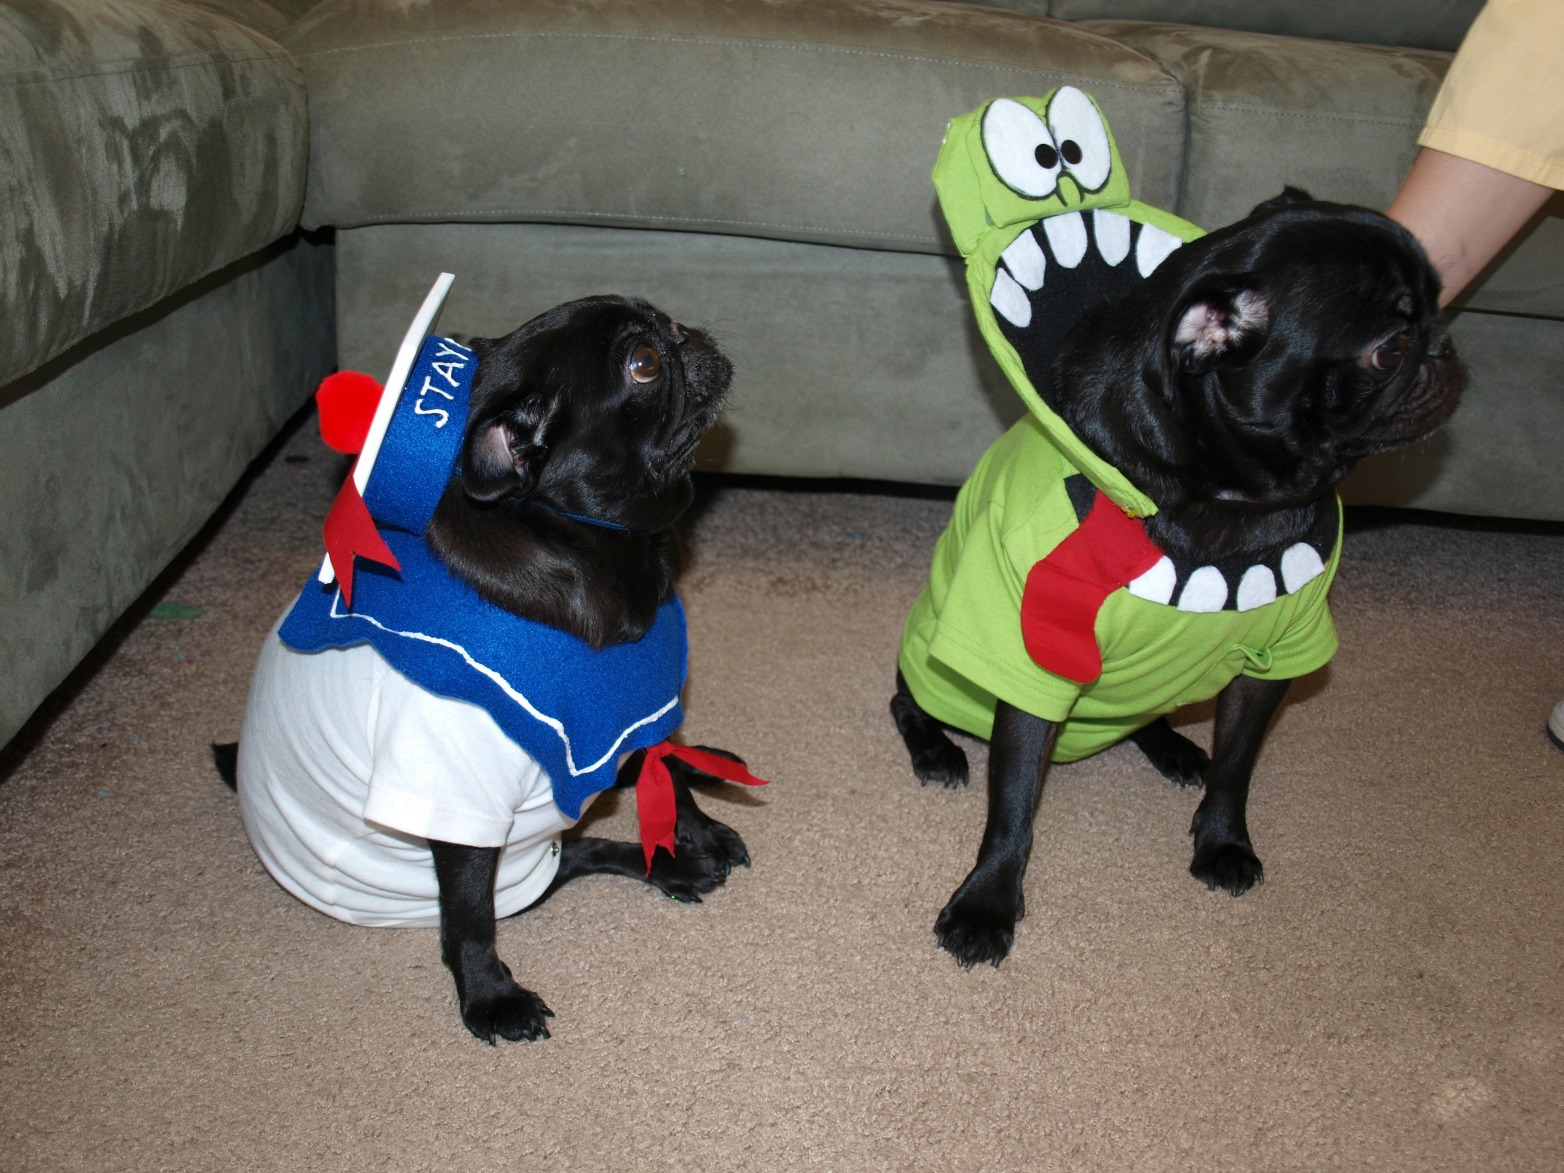 Stay Puft and Slimer